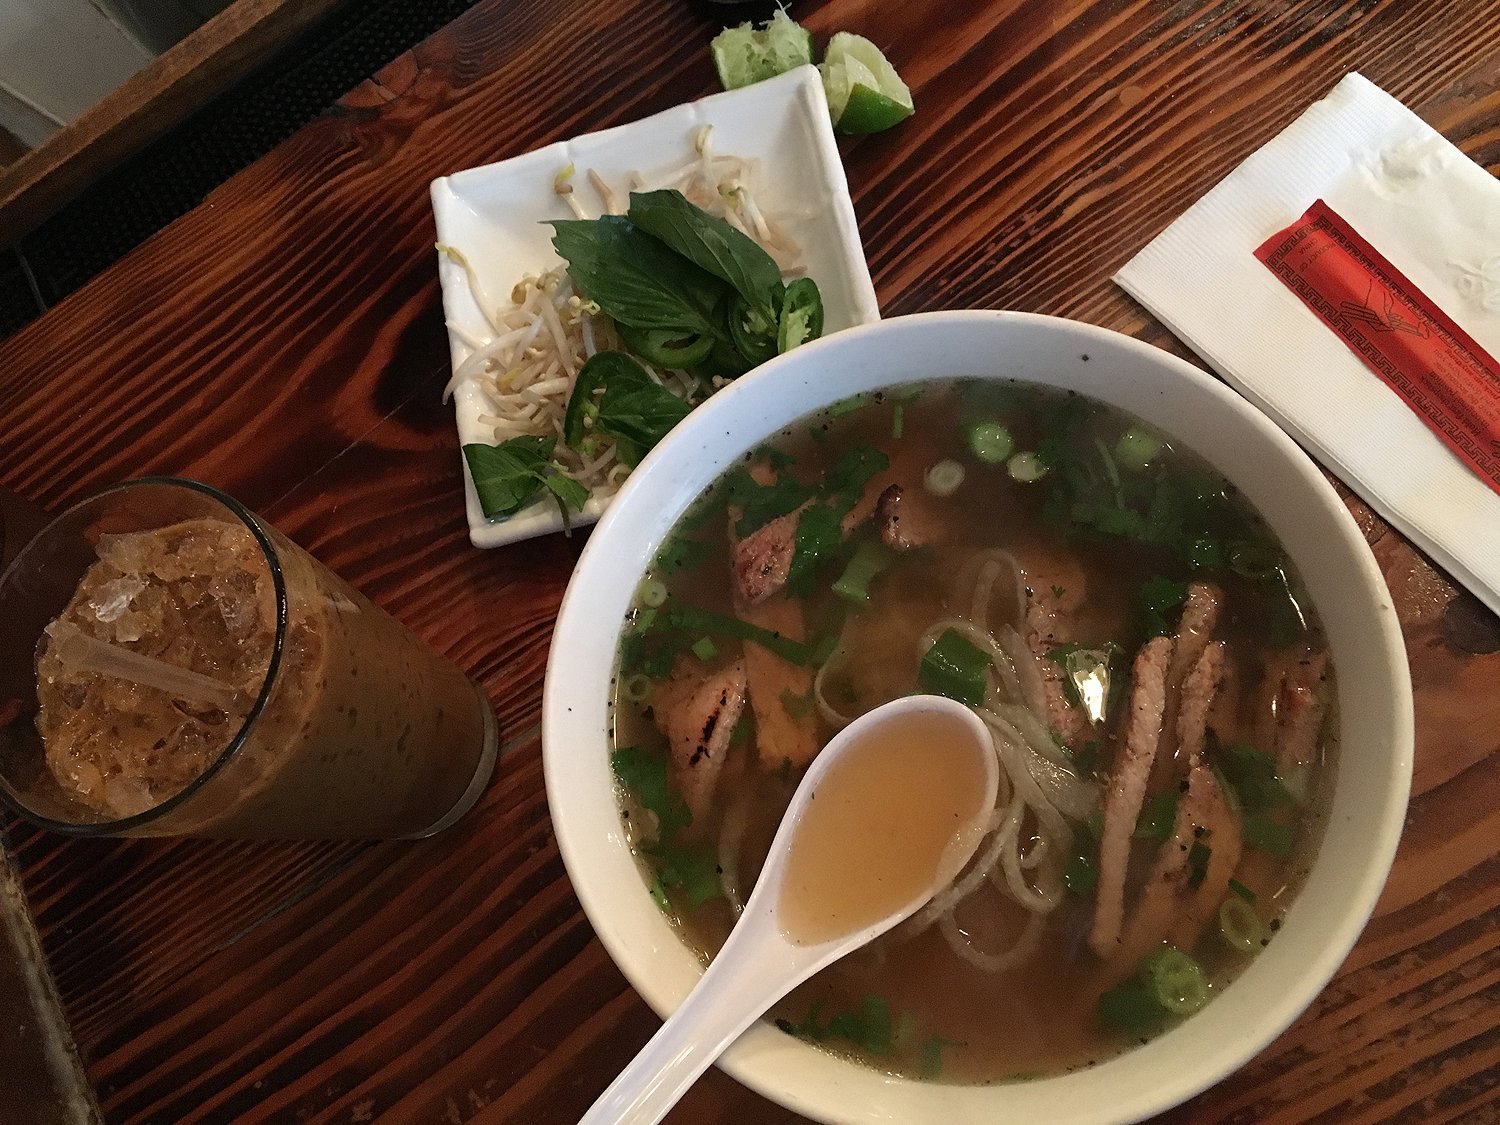 My favorite vietnamese restaurant,  Saigon Shack.  It sounds like a jenkie spot, but it's one of the BEST in NYC. If you are ever in NYC, stop by  Saigon Shack ! What you are looking for is pork chop pho.